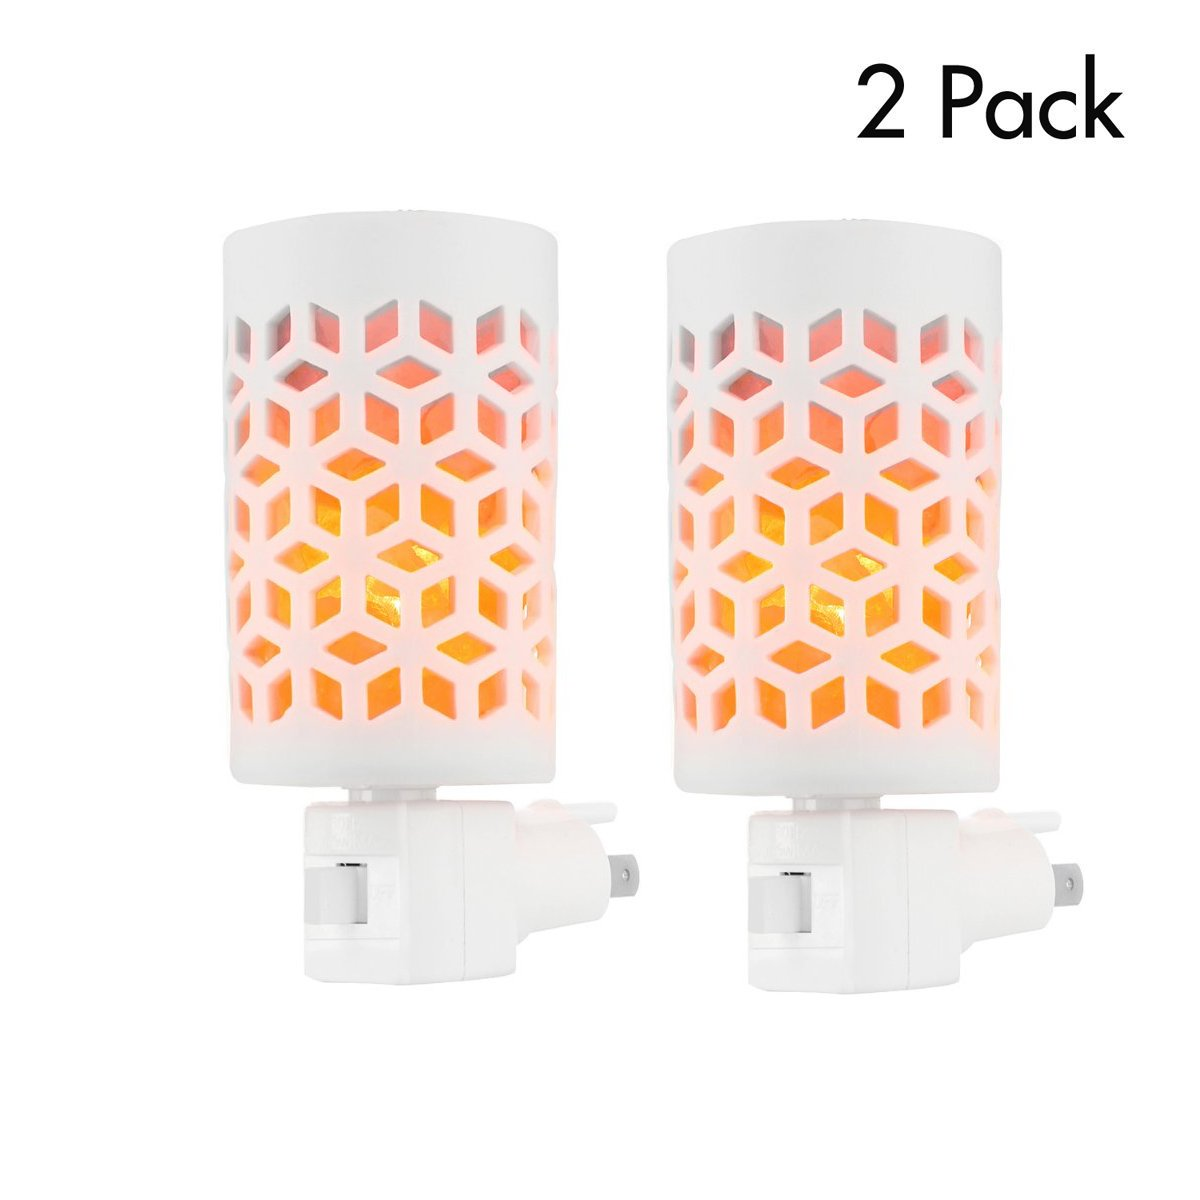 Hisoo Salt Lamp, Natural Himalayan Crystal Salt Rock Lamp with Salt Chunks in Ceramic Basket Wall Plug Night Light for Air Purifying,Home Decor(Yellow-Ceramic-lamp, 2 pack)